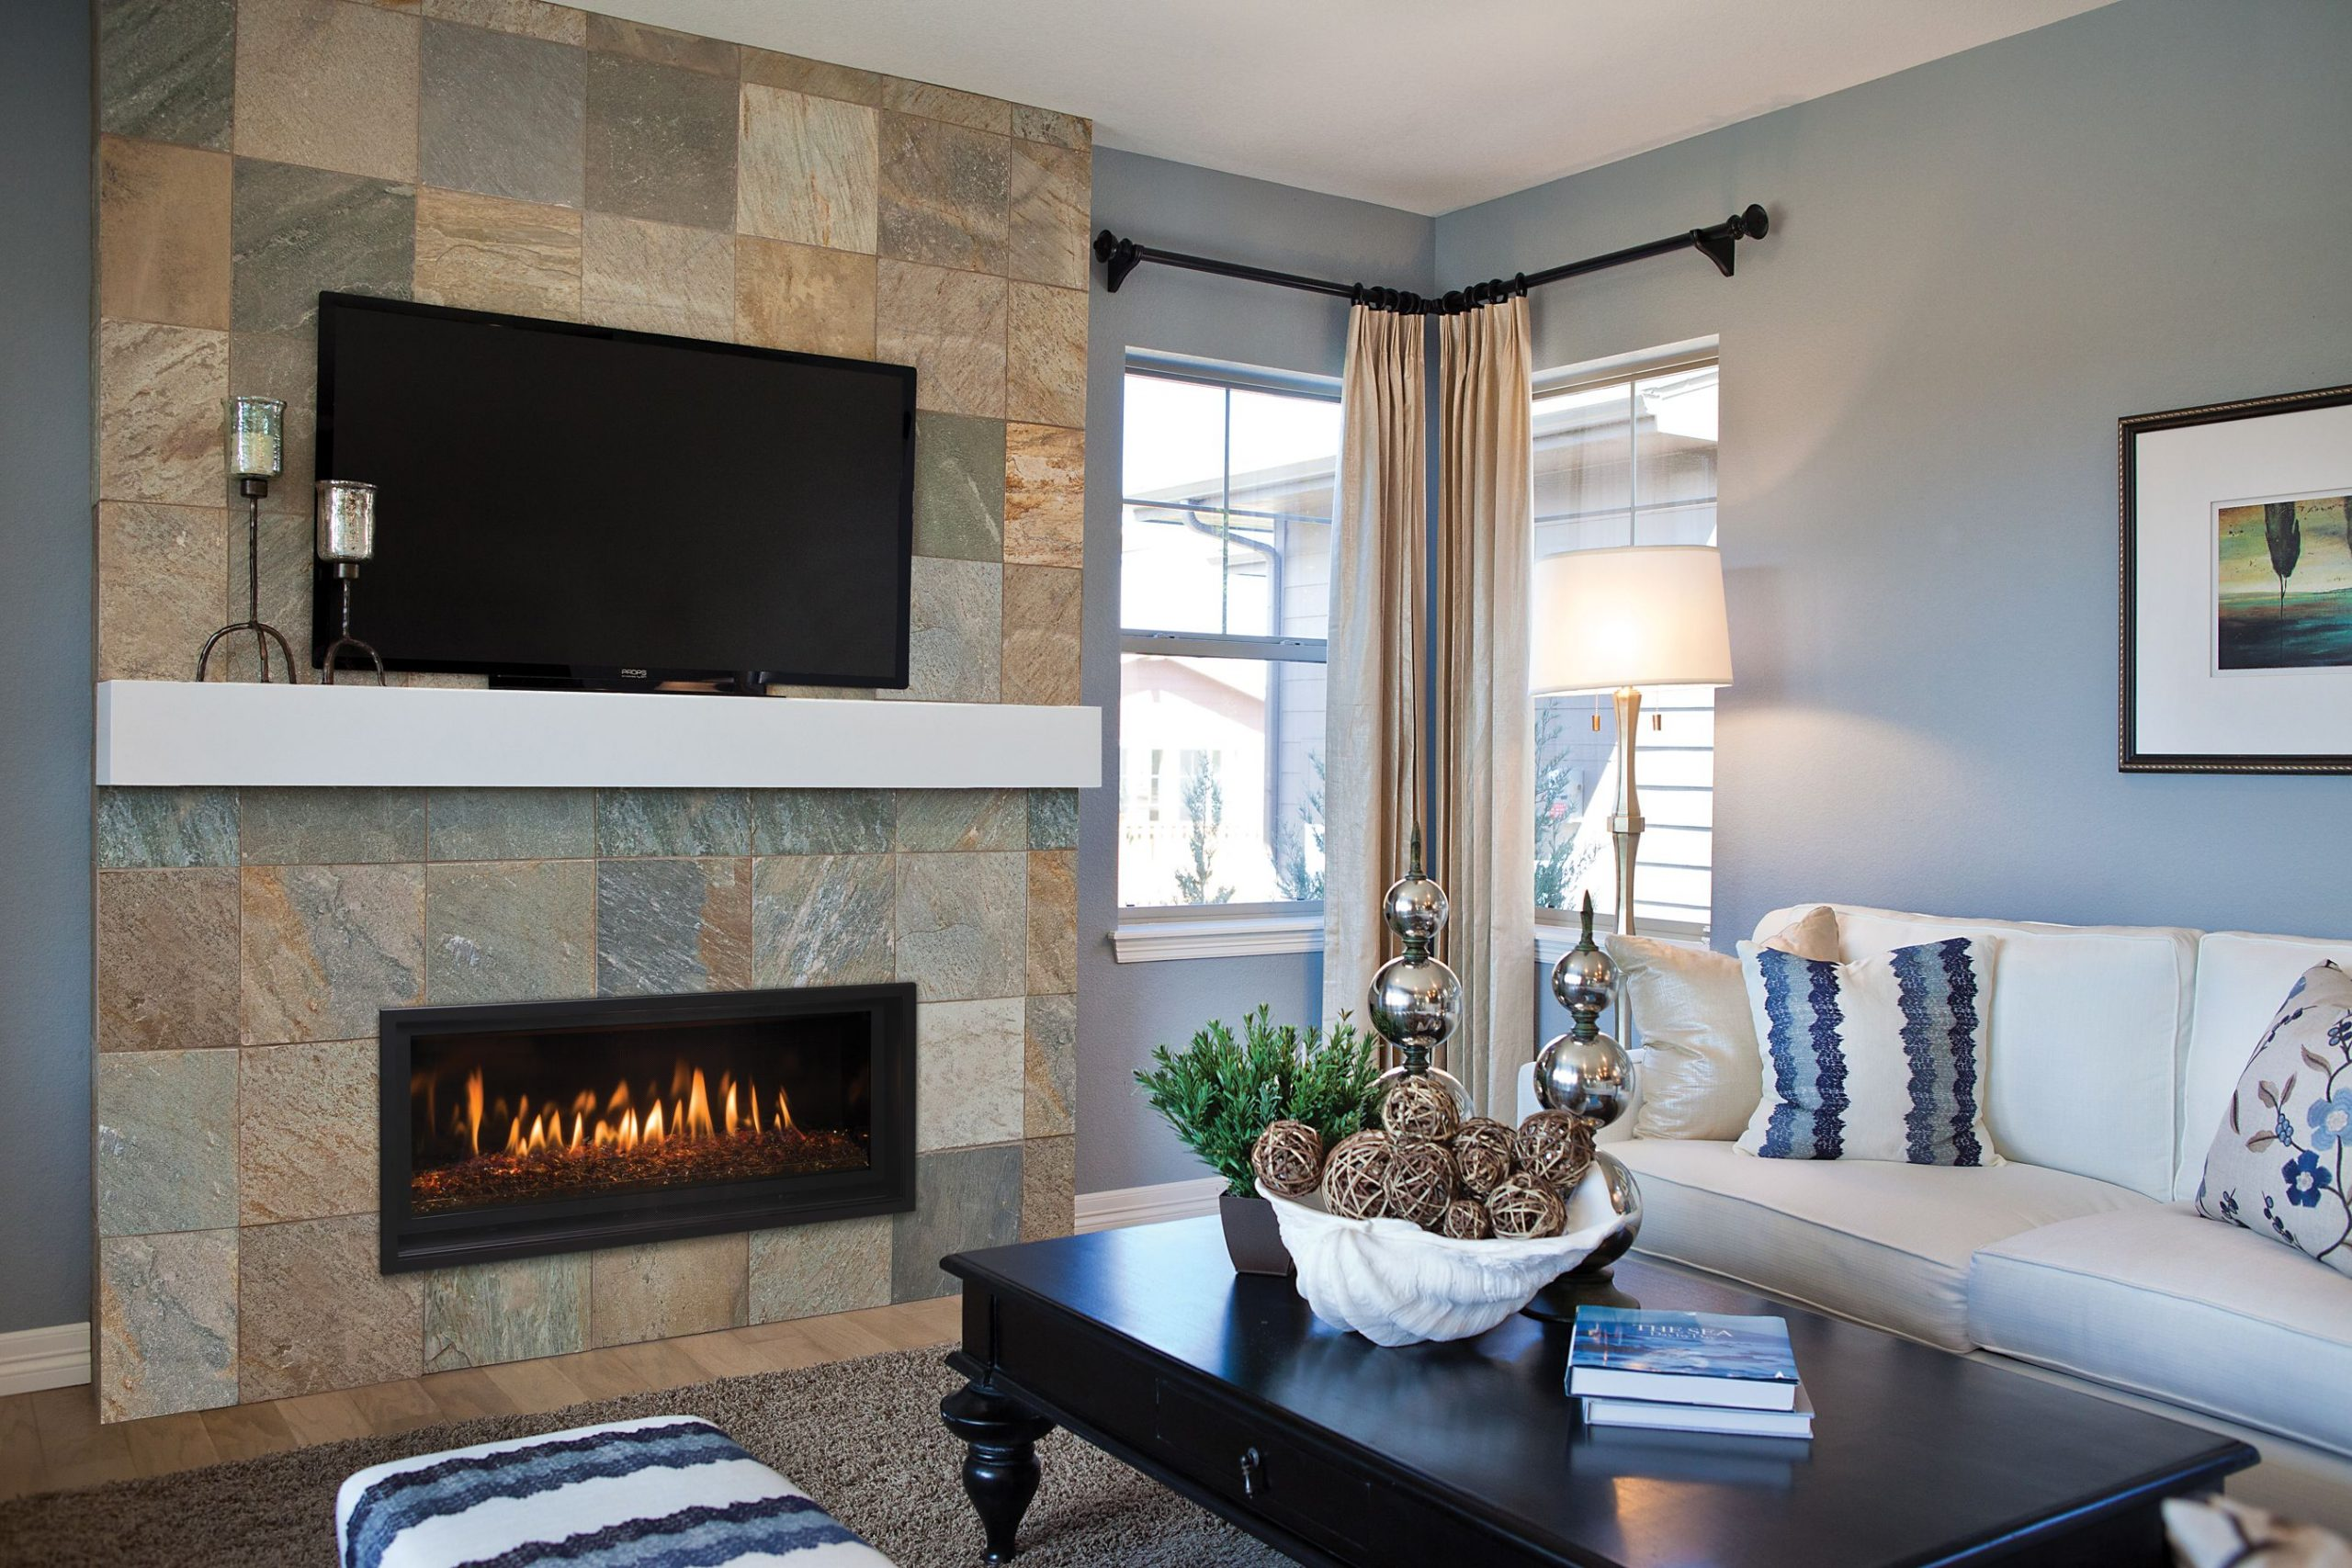 How to Best Plan for a Fireplace Installation